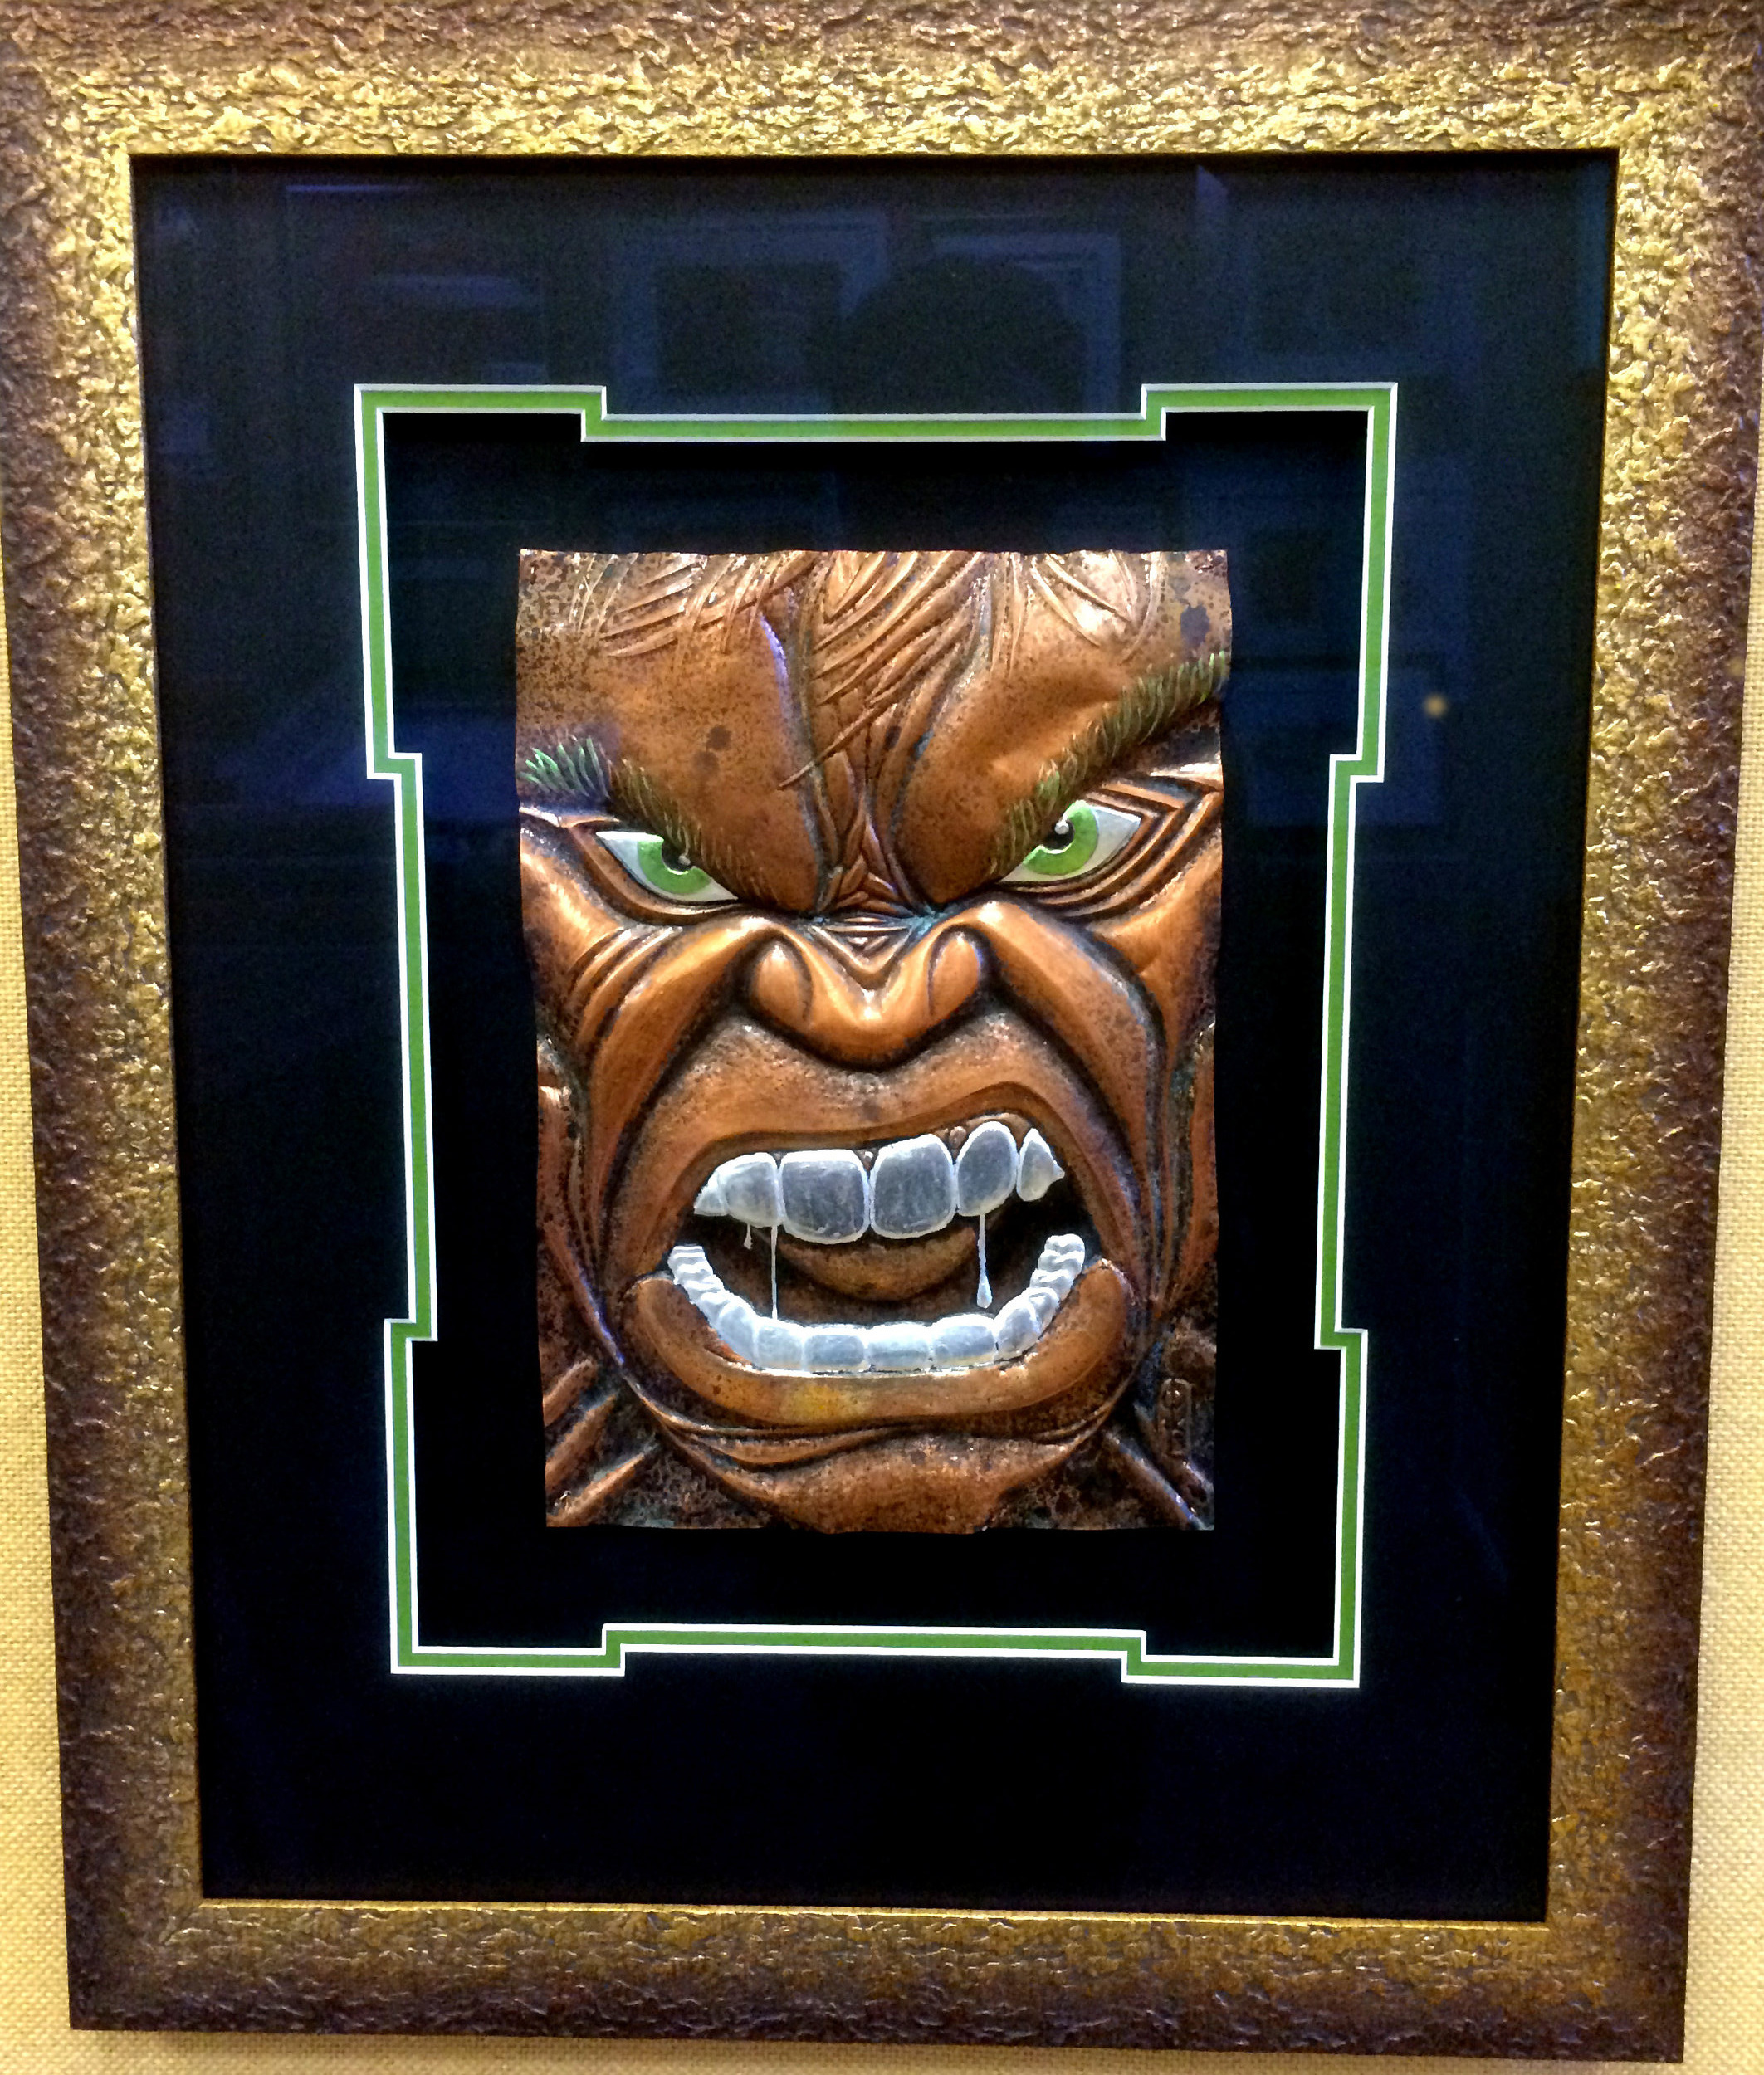 This Hulk original was created by local artist Chris Duncan using copper sheeting and patinating substances. Invisible glass makes the image seem like it is ready to burst out from the frame